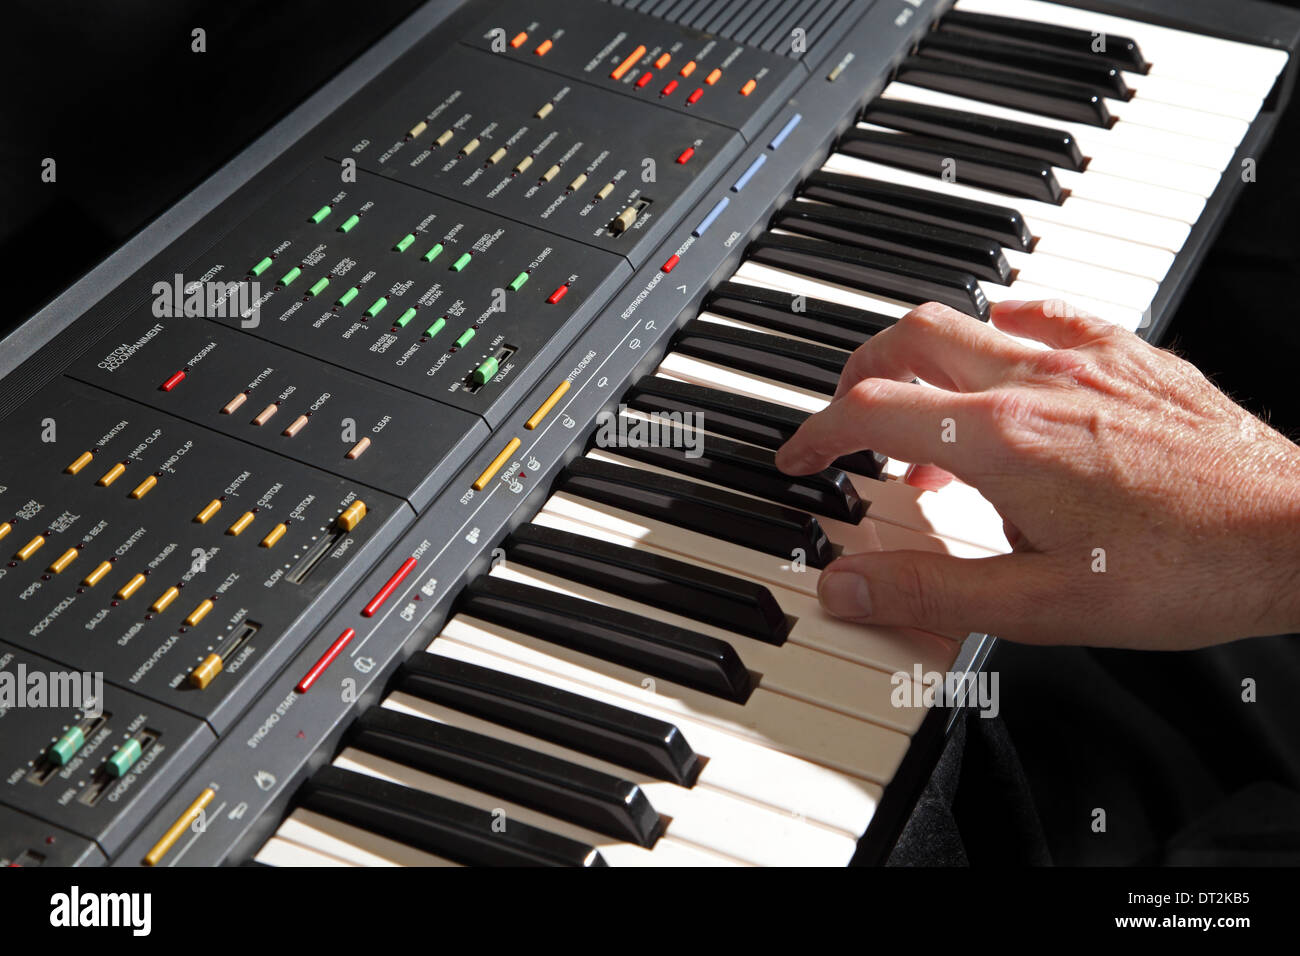 An electronic musical keyboard instrument being played showing the performers right hand. Plain black background. - Stock Image